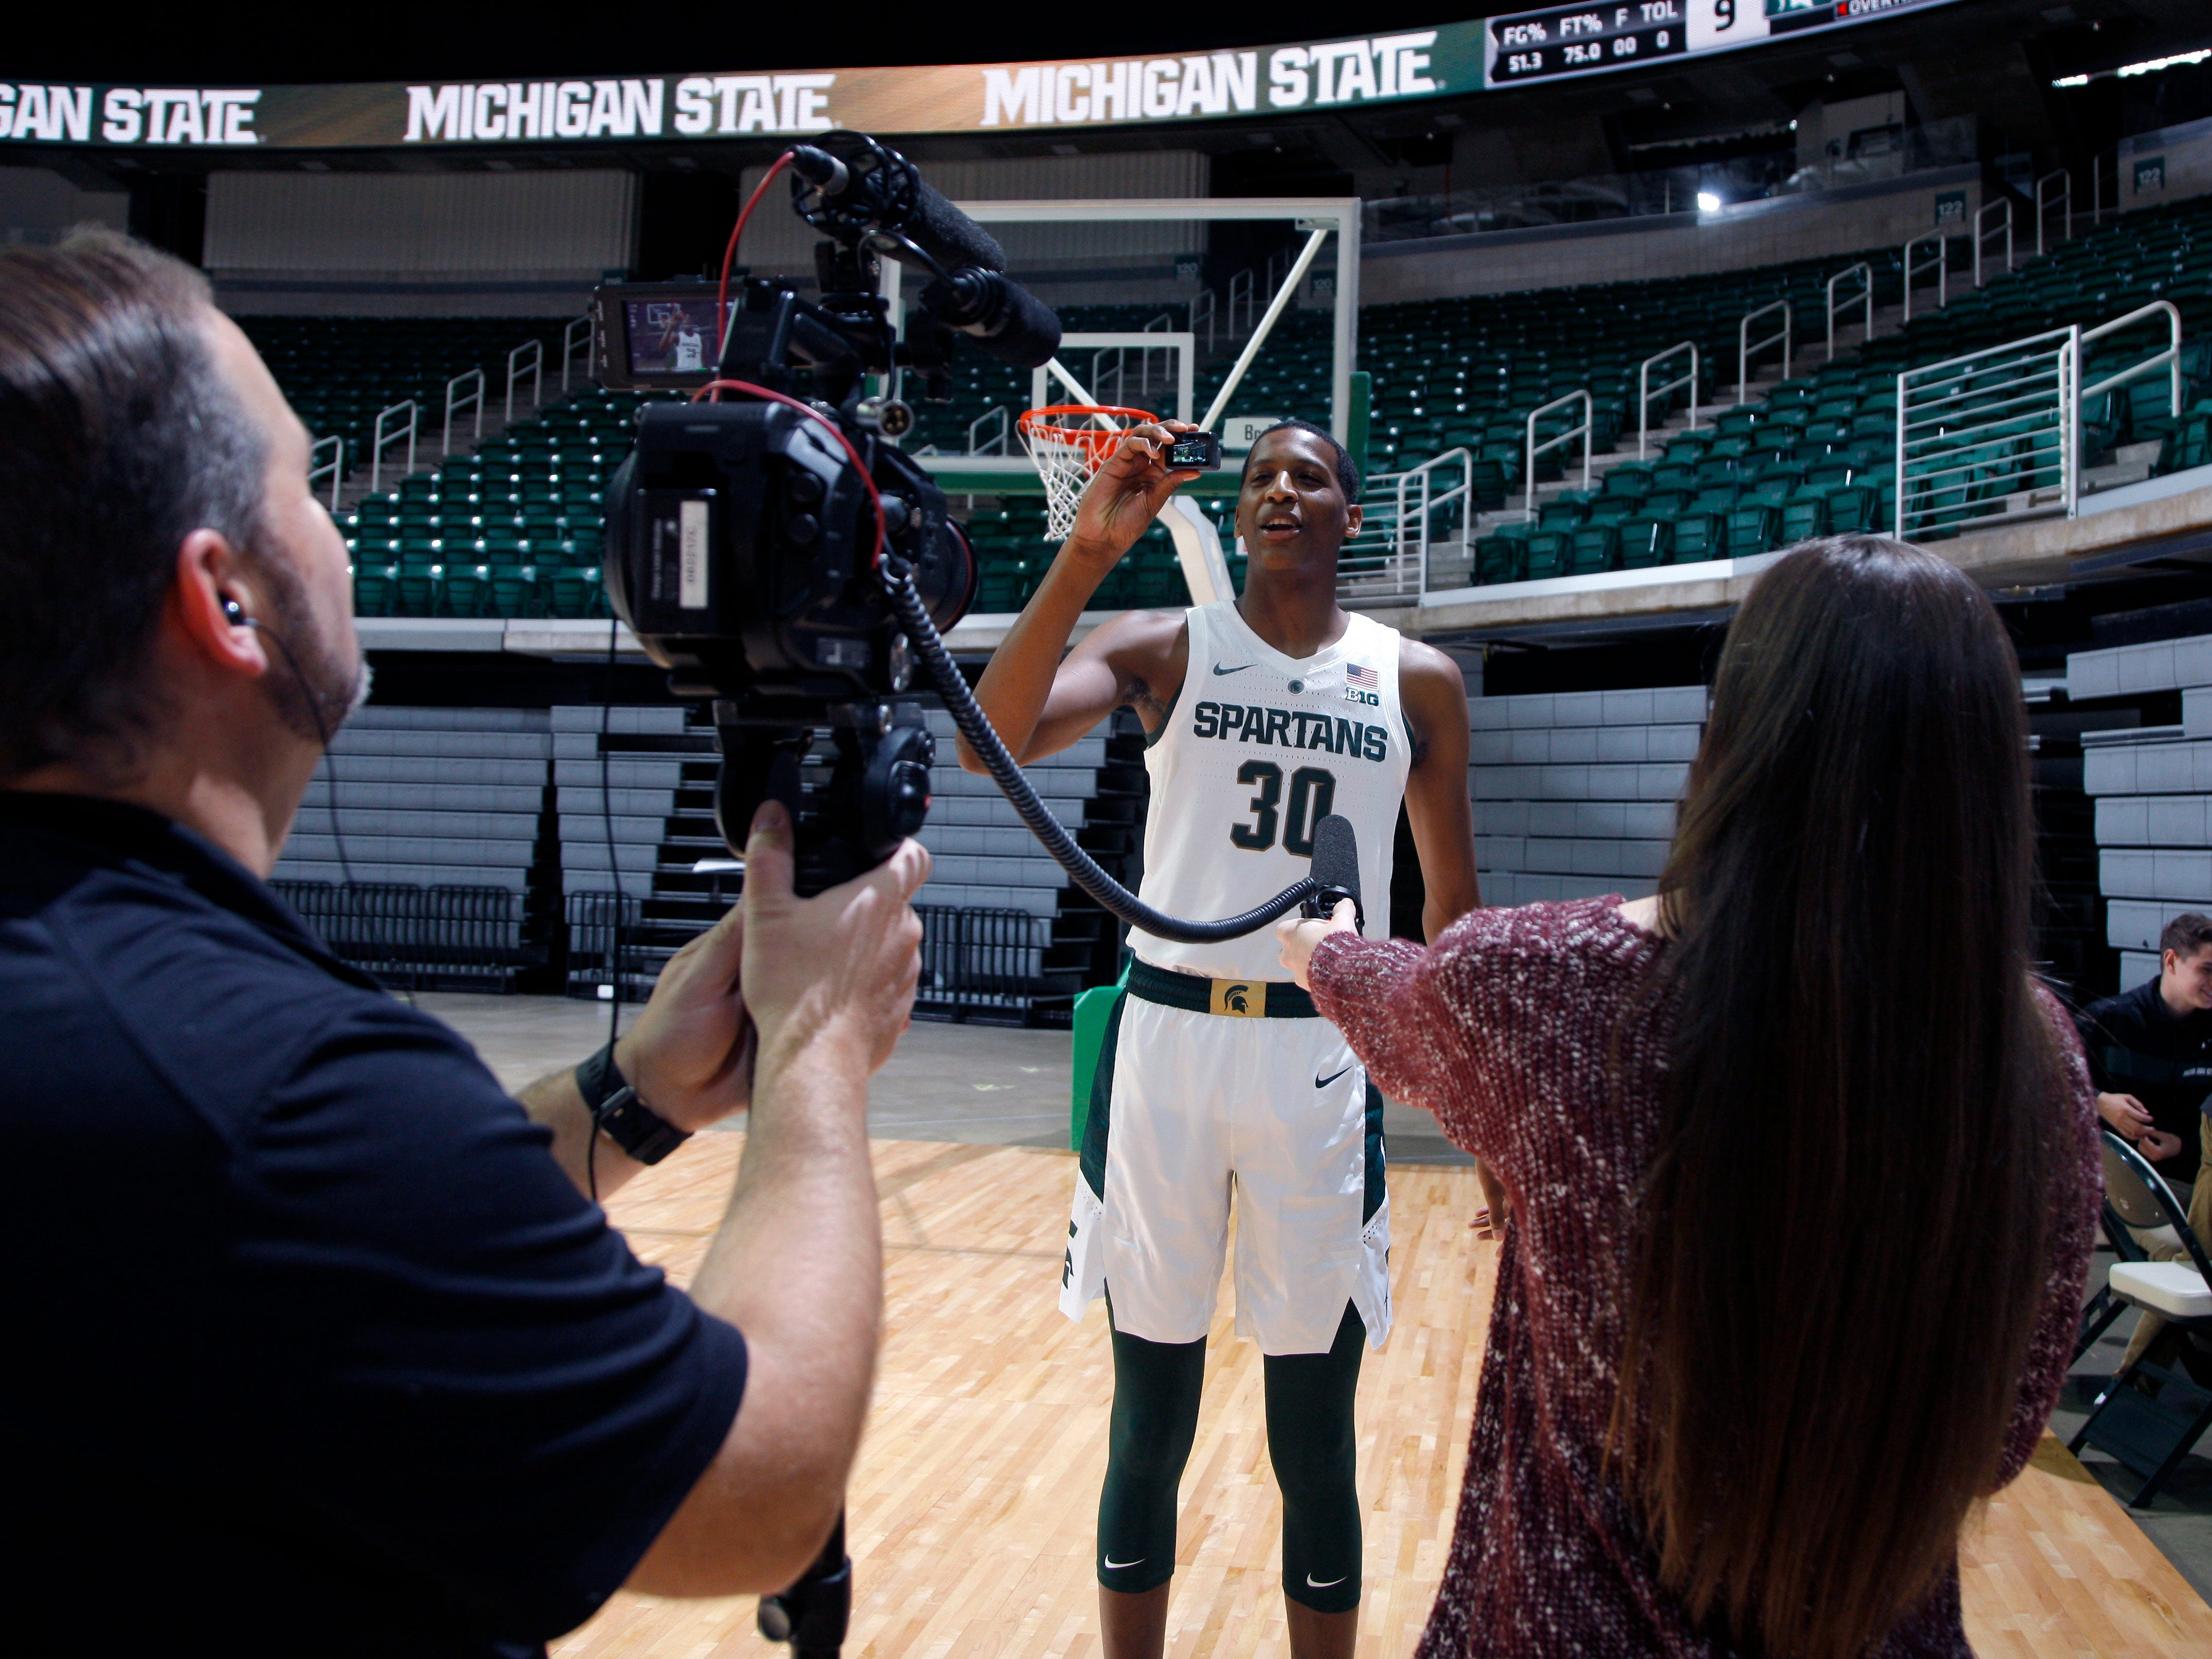 Michigan State freshman Marcus Bingham Jr. is interviewed during the team's media day, Thursday, Oct. 25, 2018, in East Lansing, Mich.